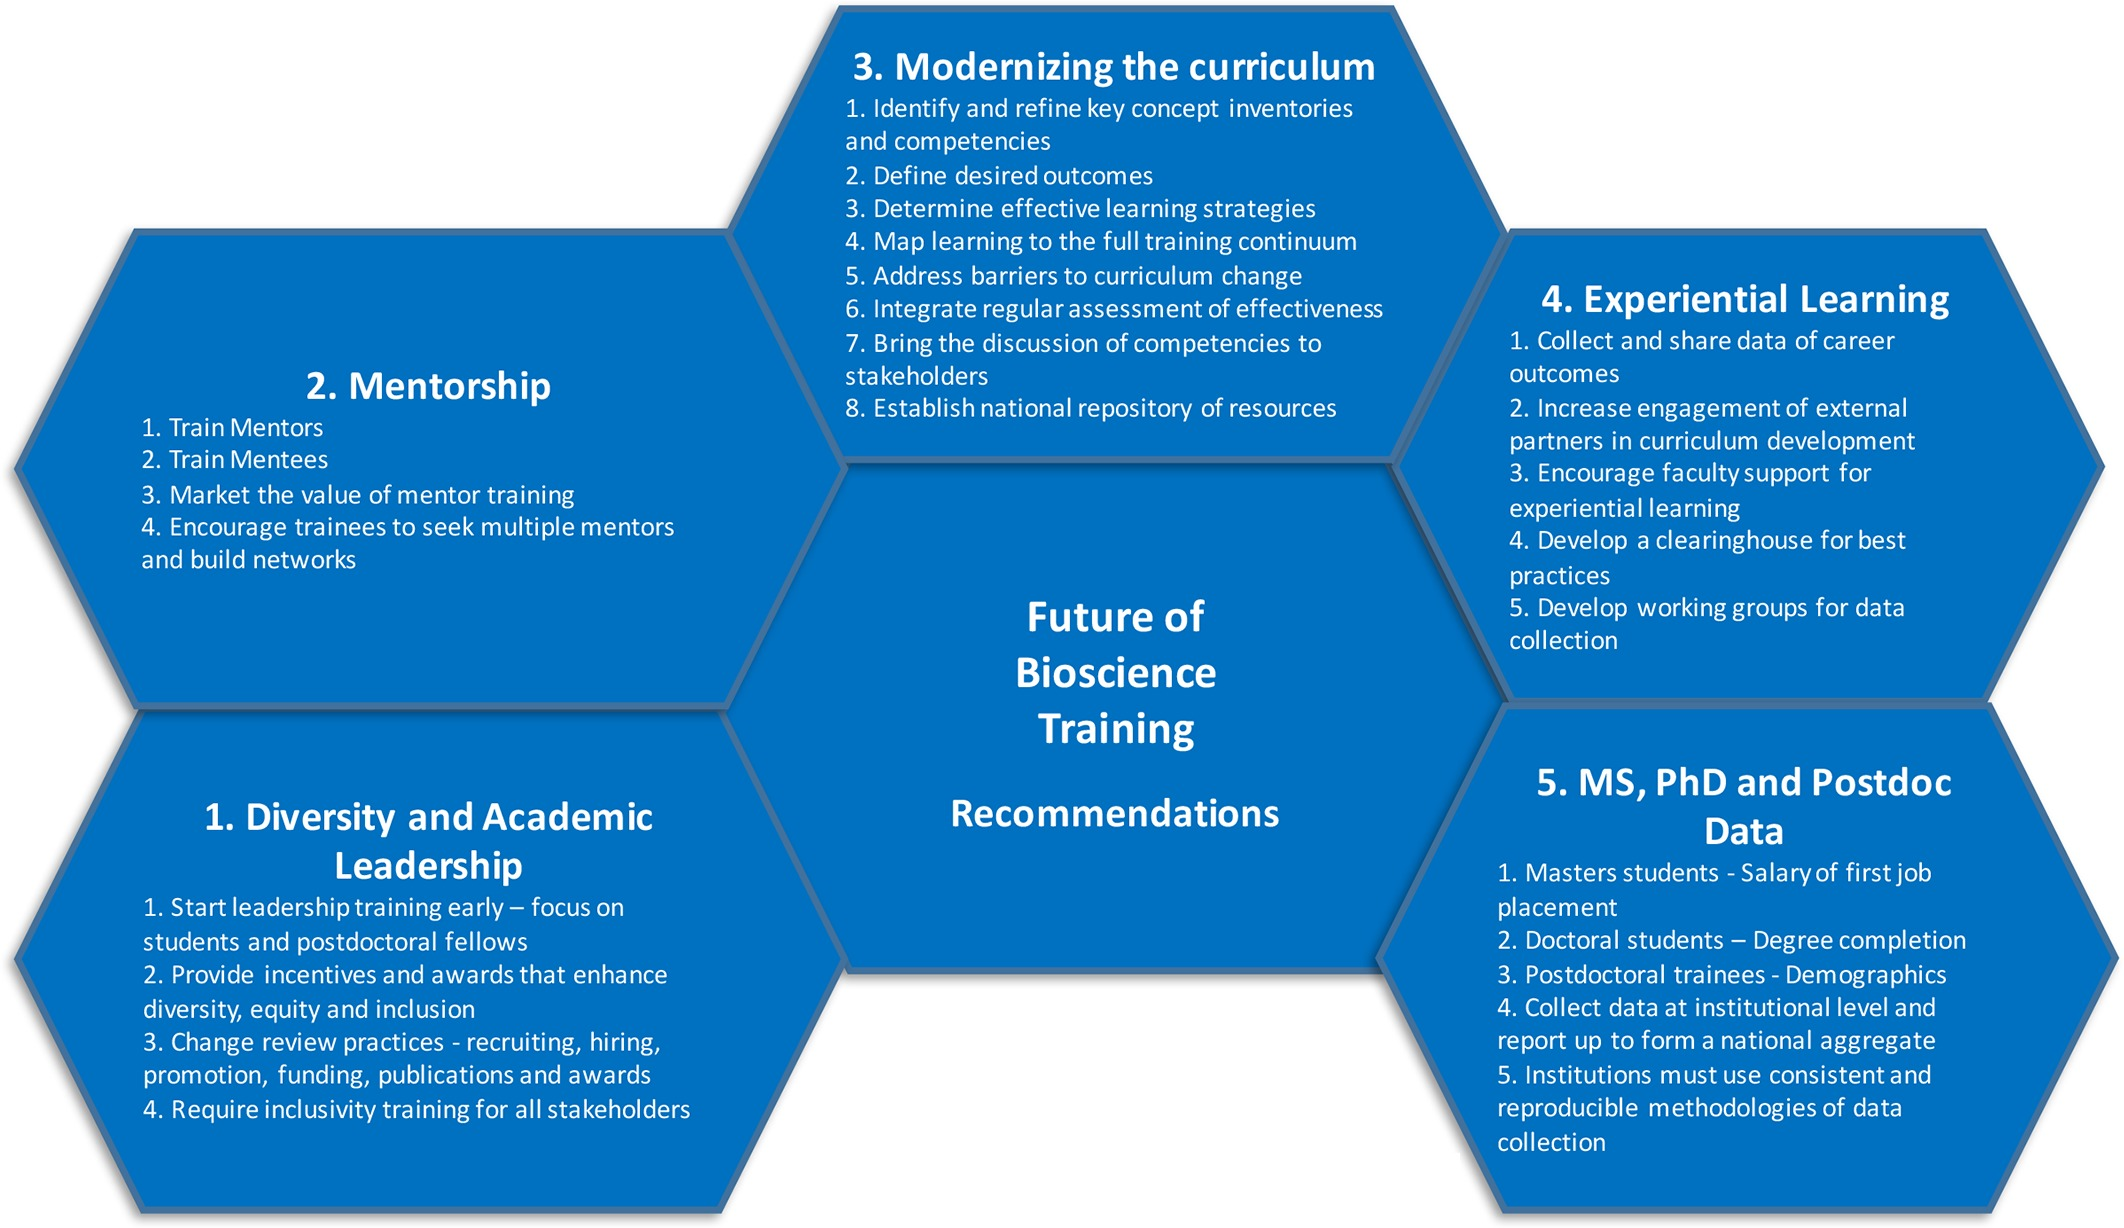 The future of graduate and postdoctoral training in the